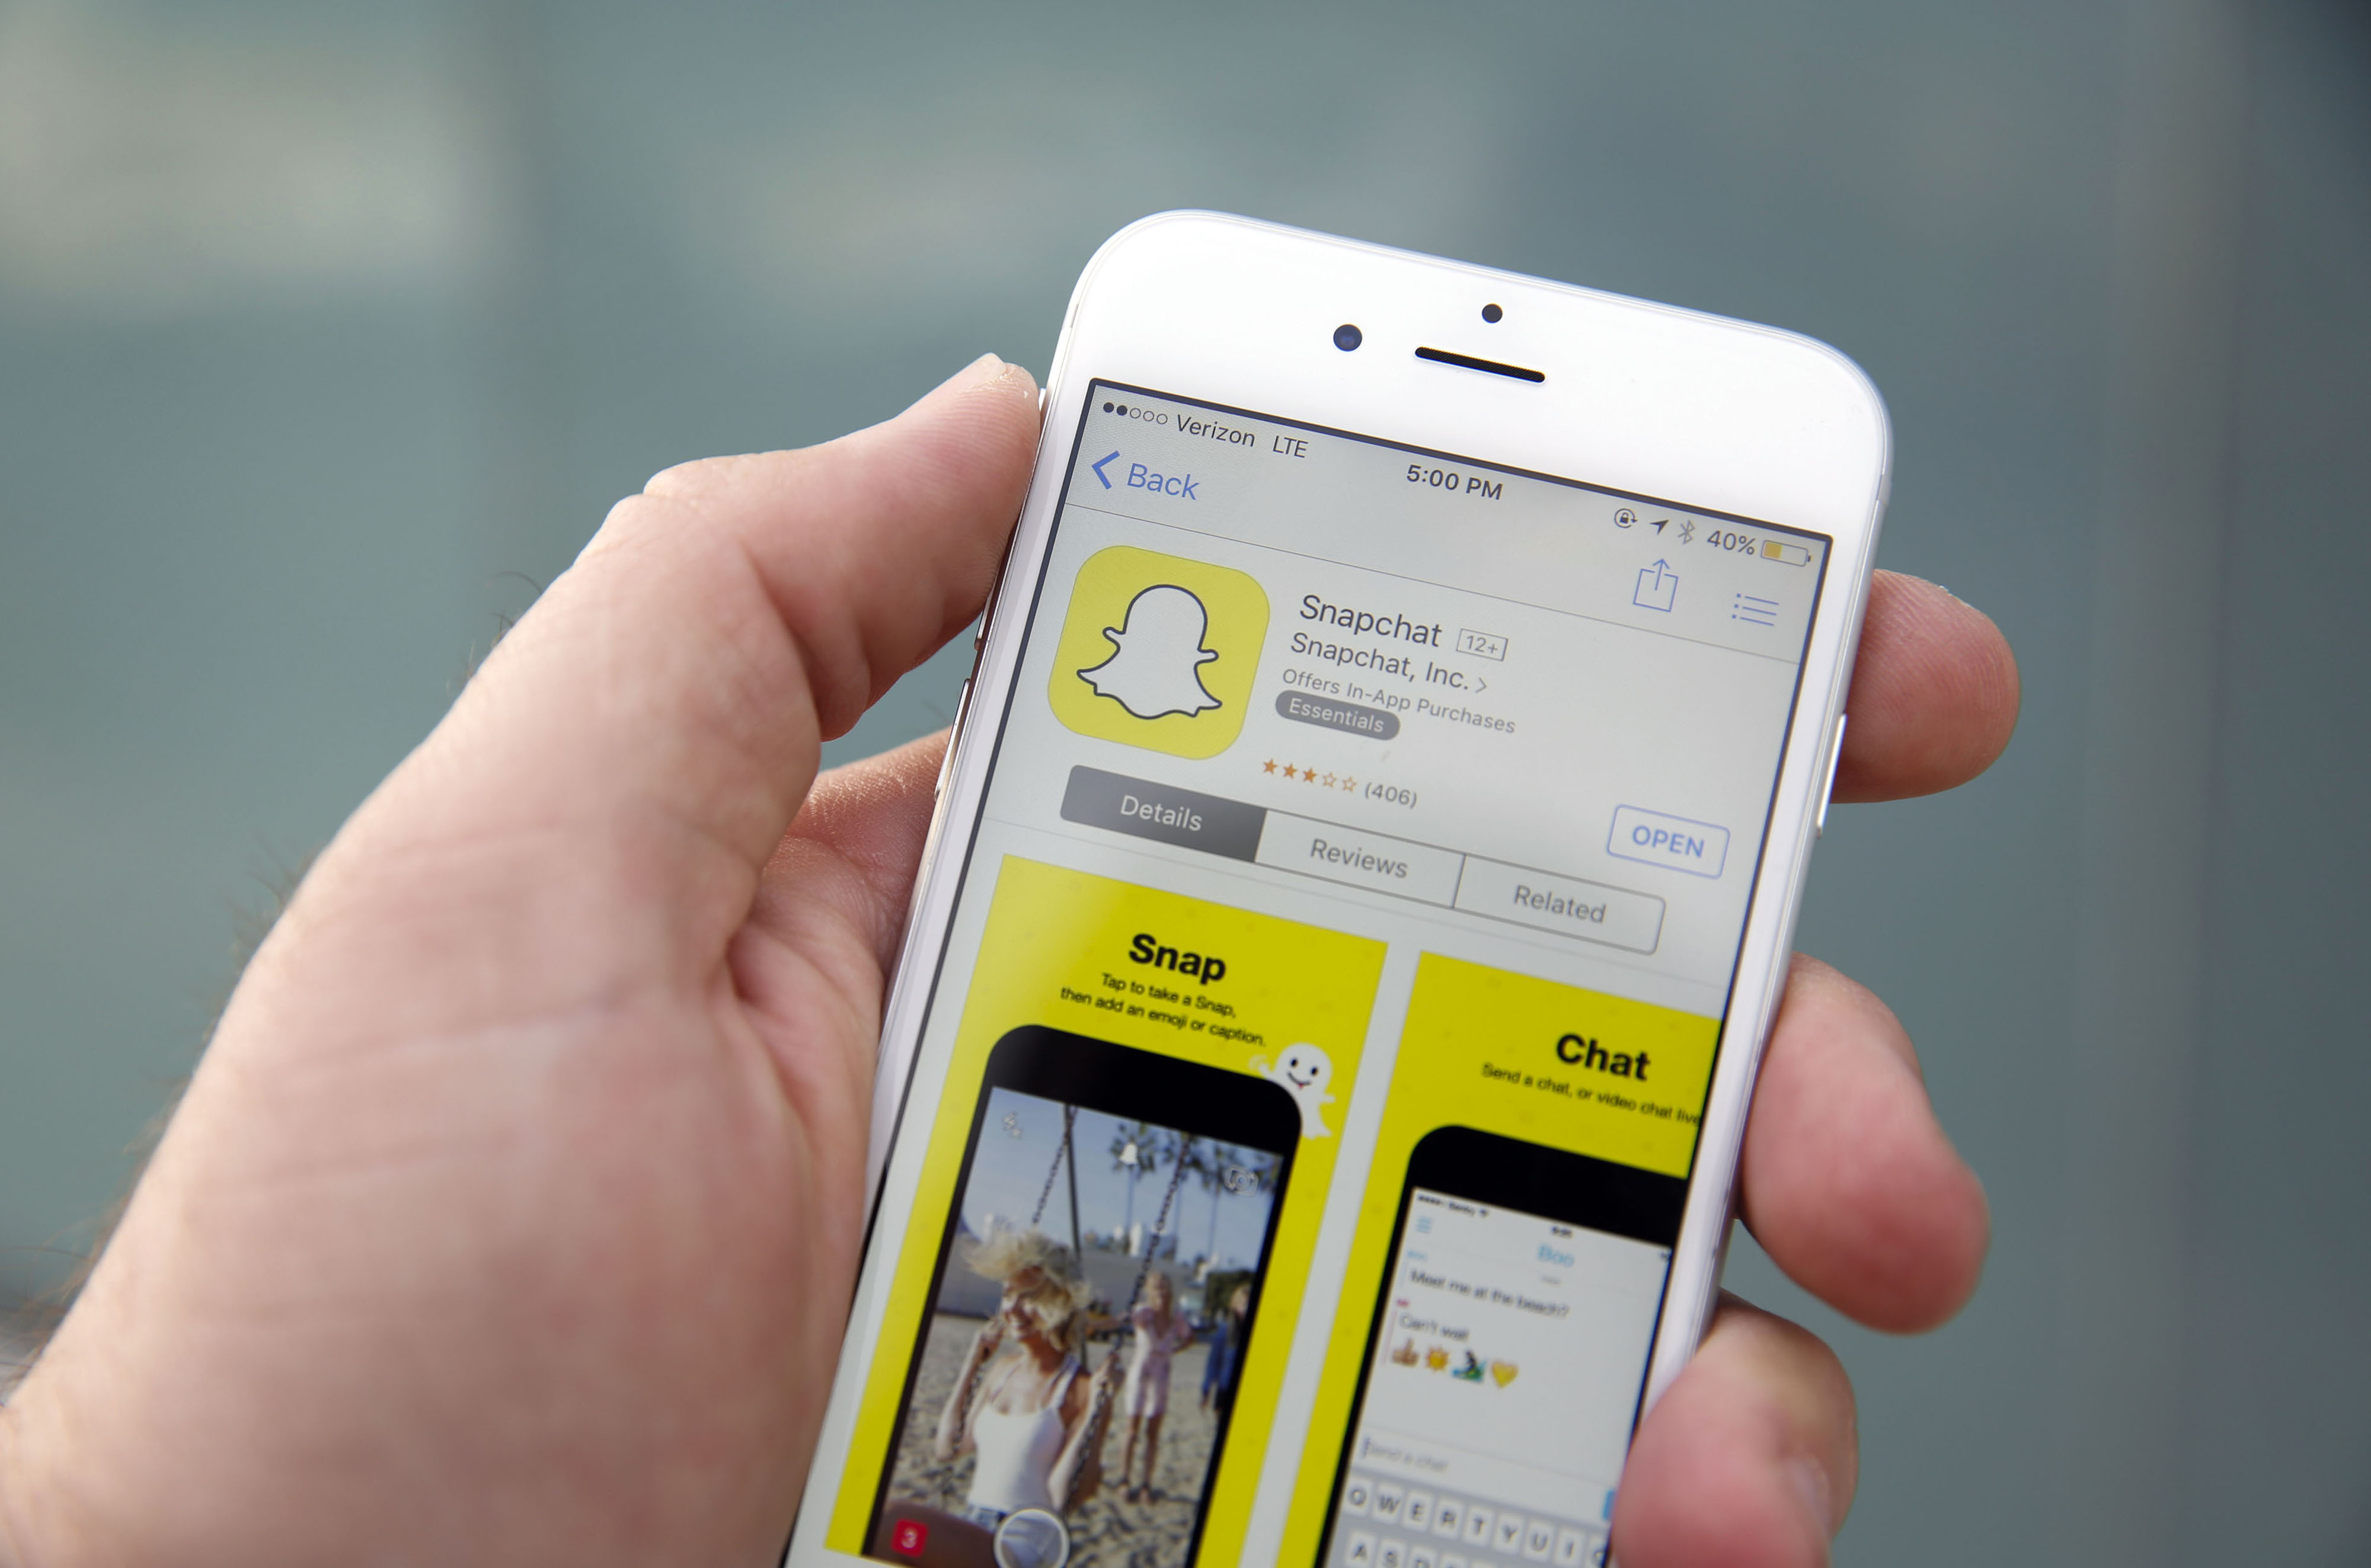 Blackberry accuses snap of using patented messaging technology blackberry accuses snap of using patented messaging technology bloomberg buycottarizona Image collections